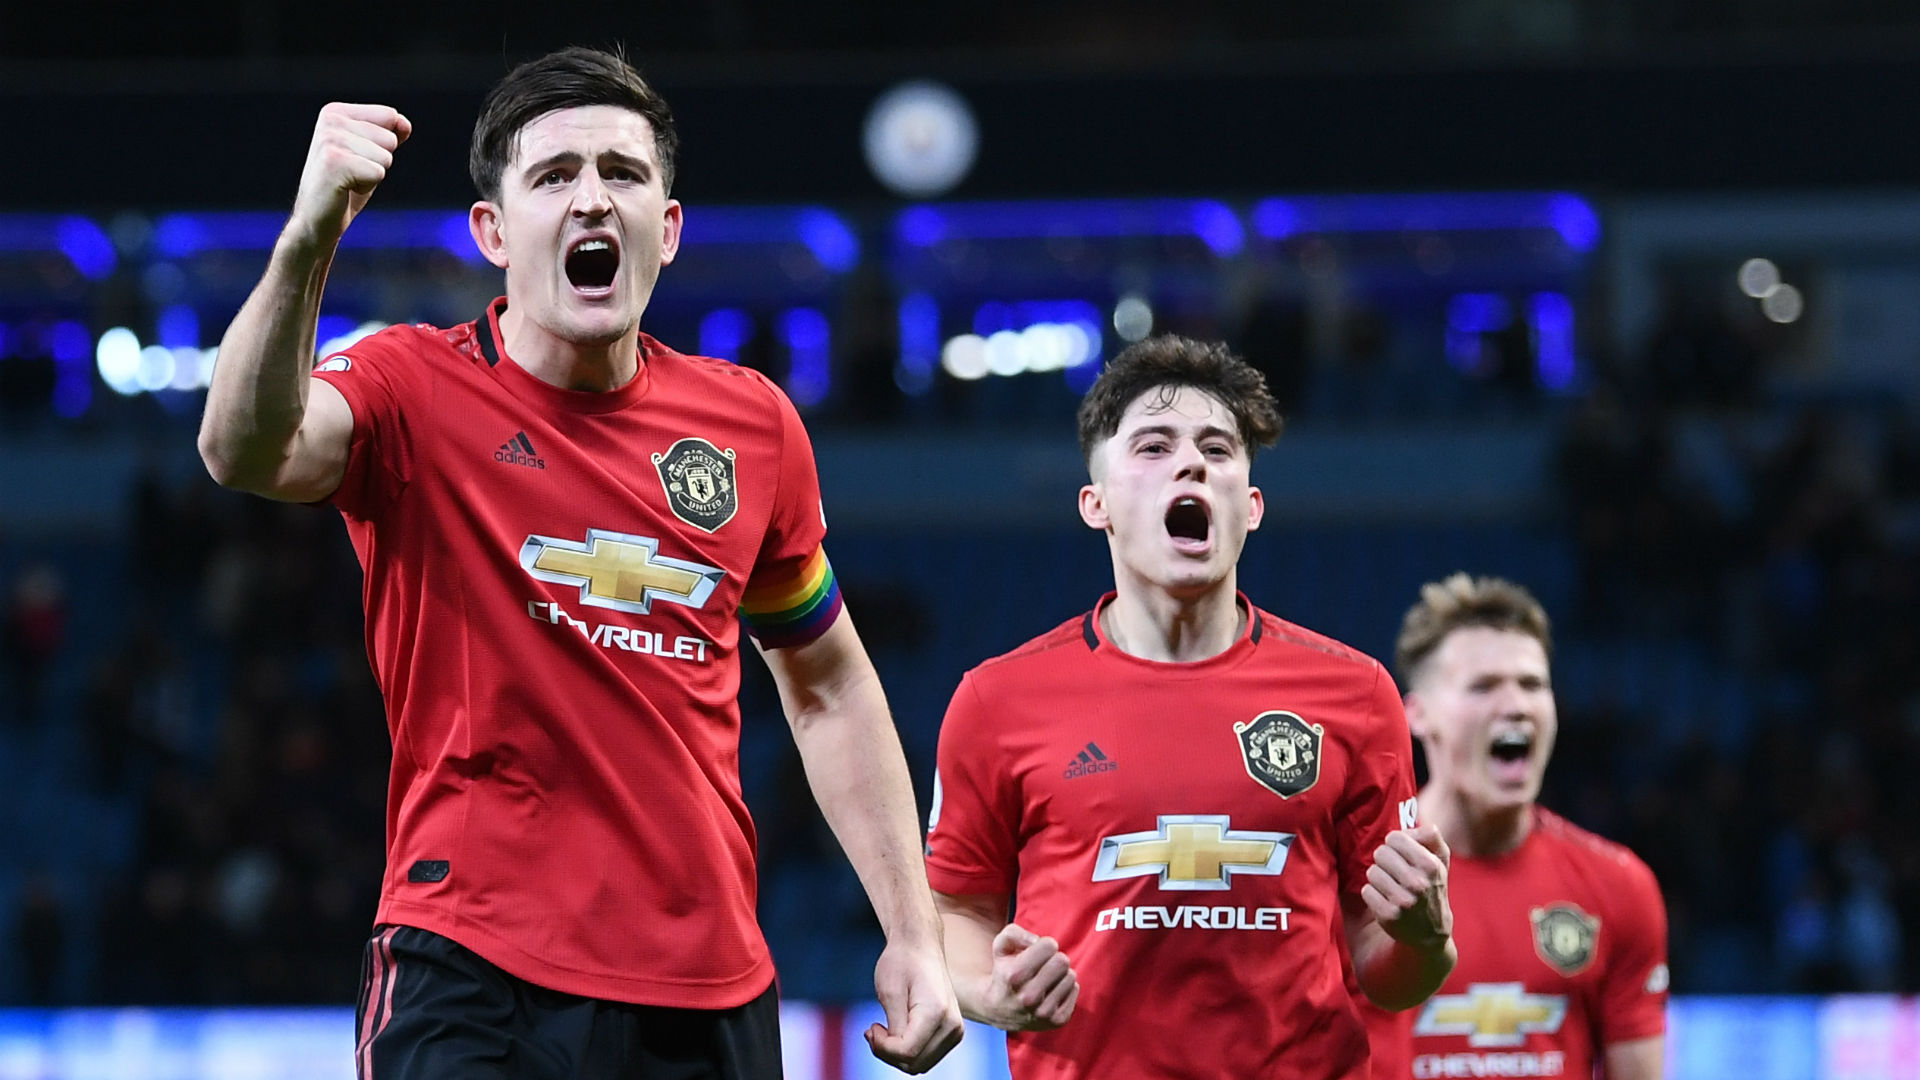 Manchester United's firepower enough for top four - Maguire